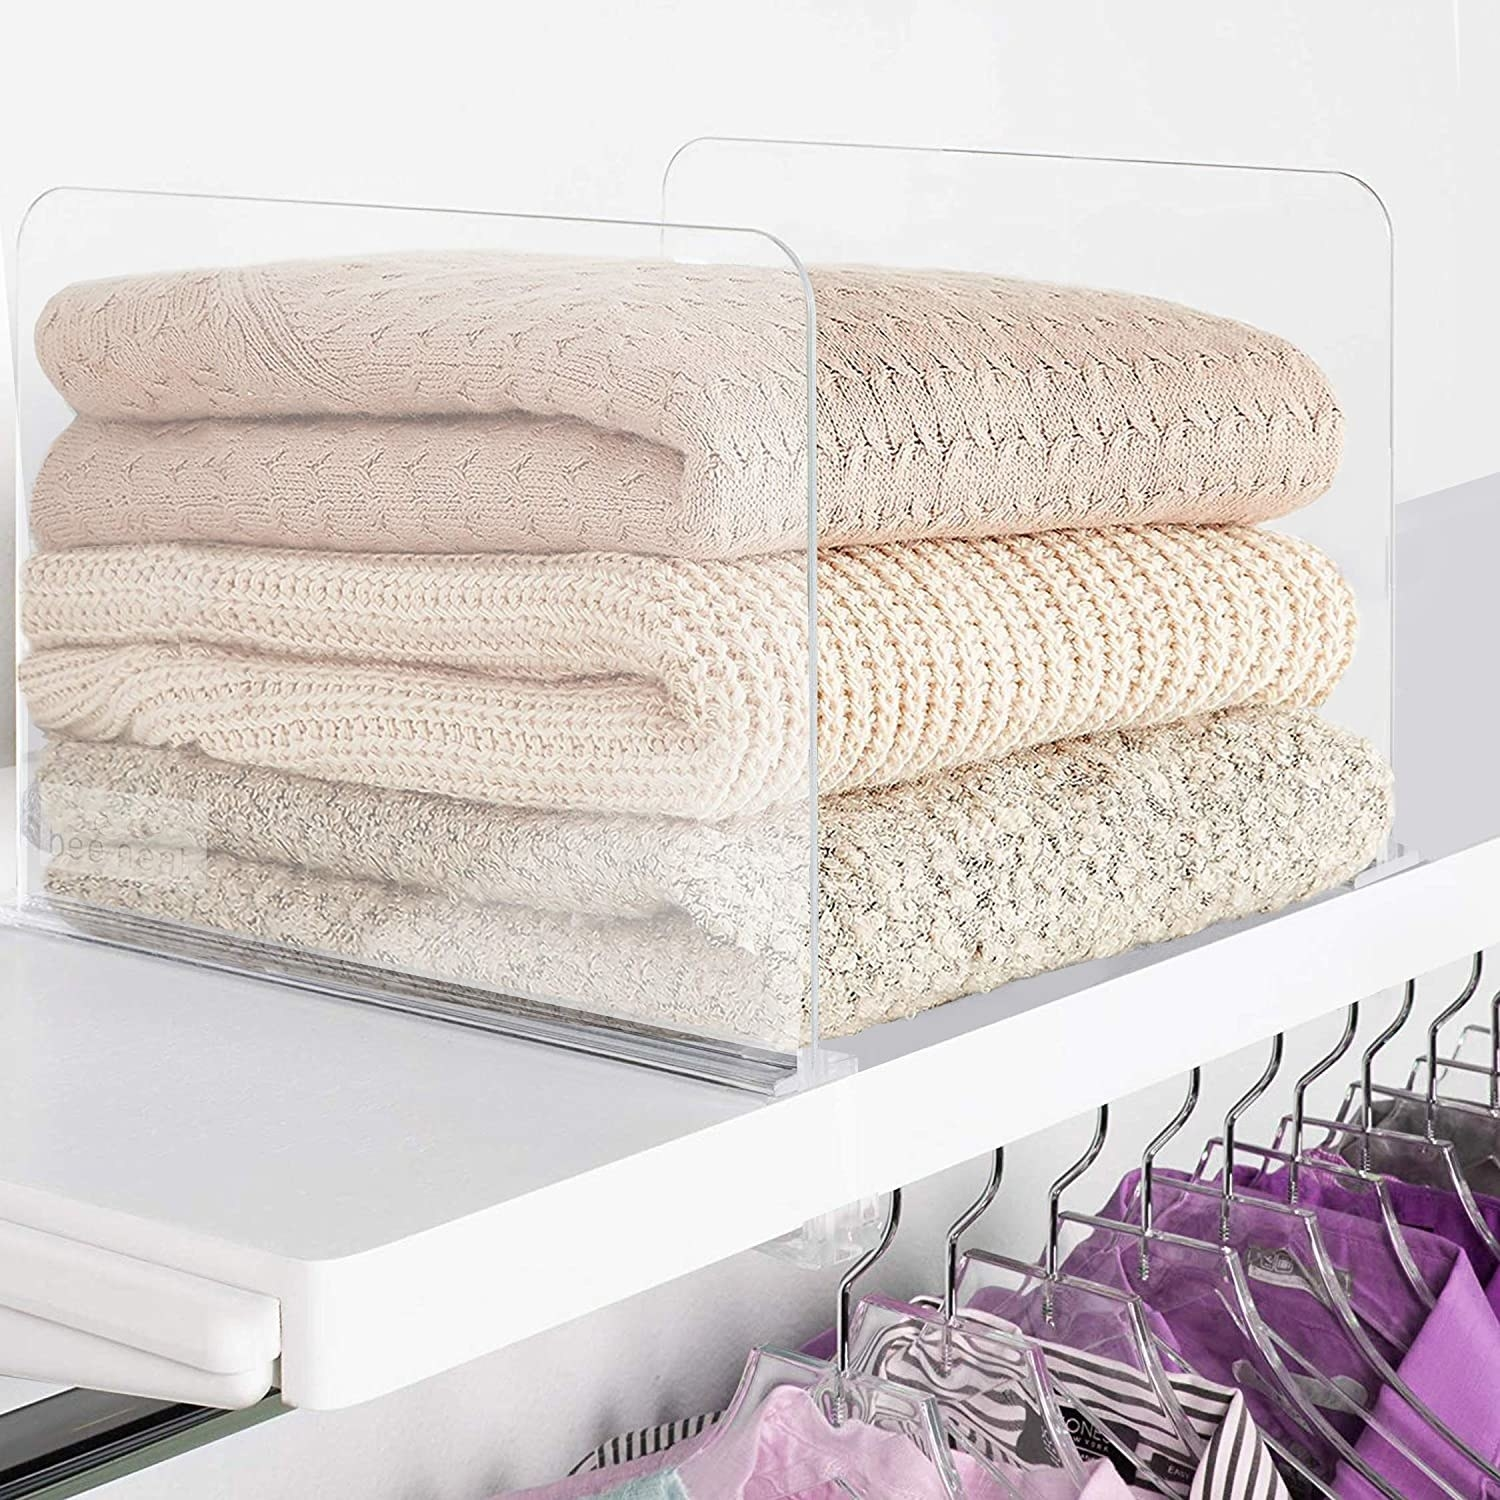 A reviewer's towels being divided with the product